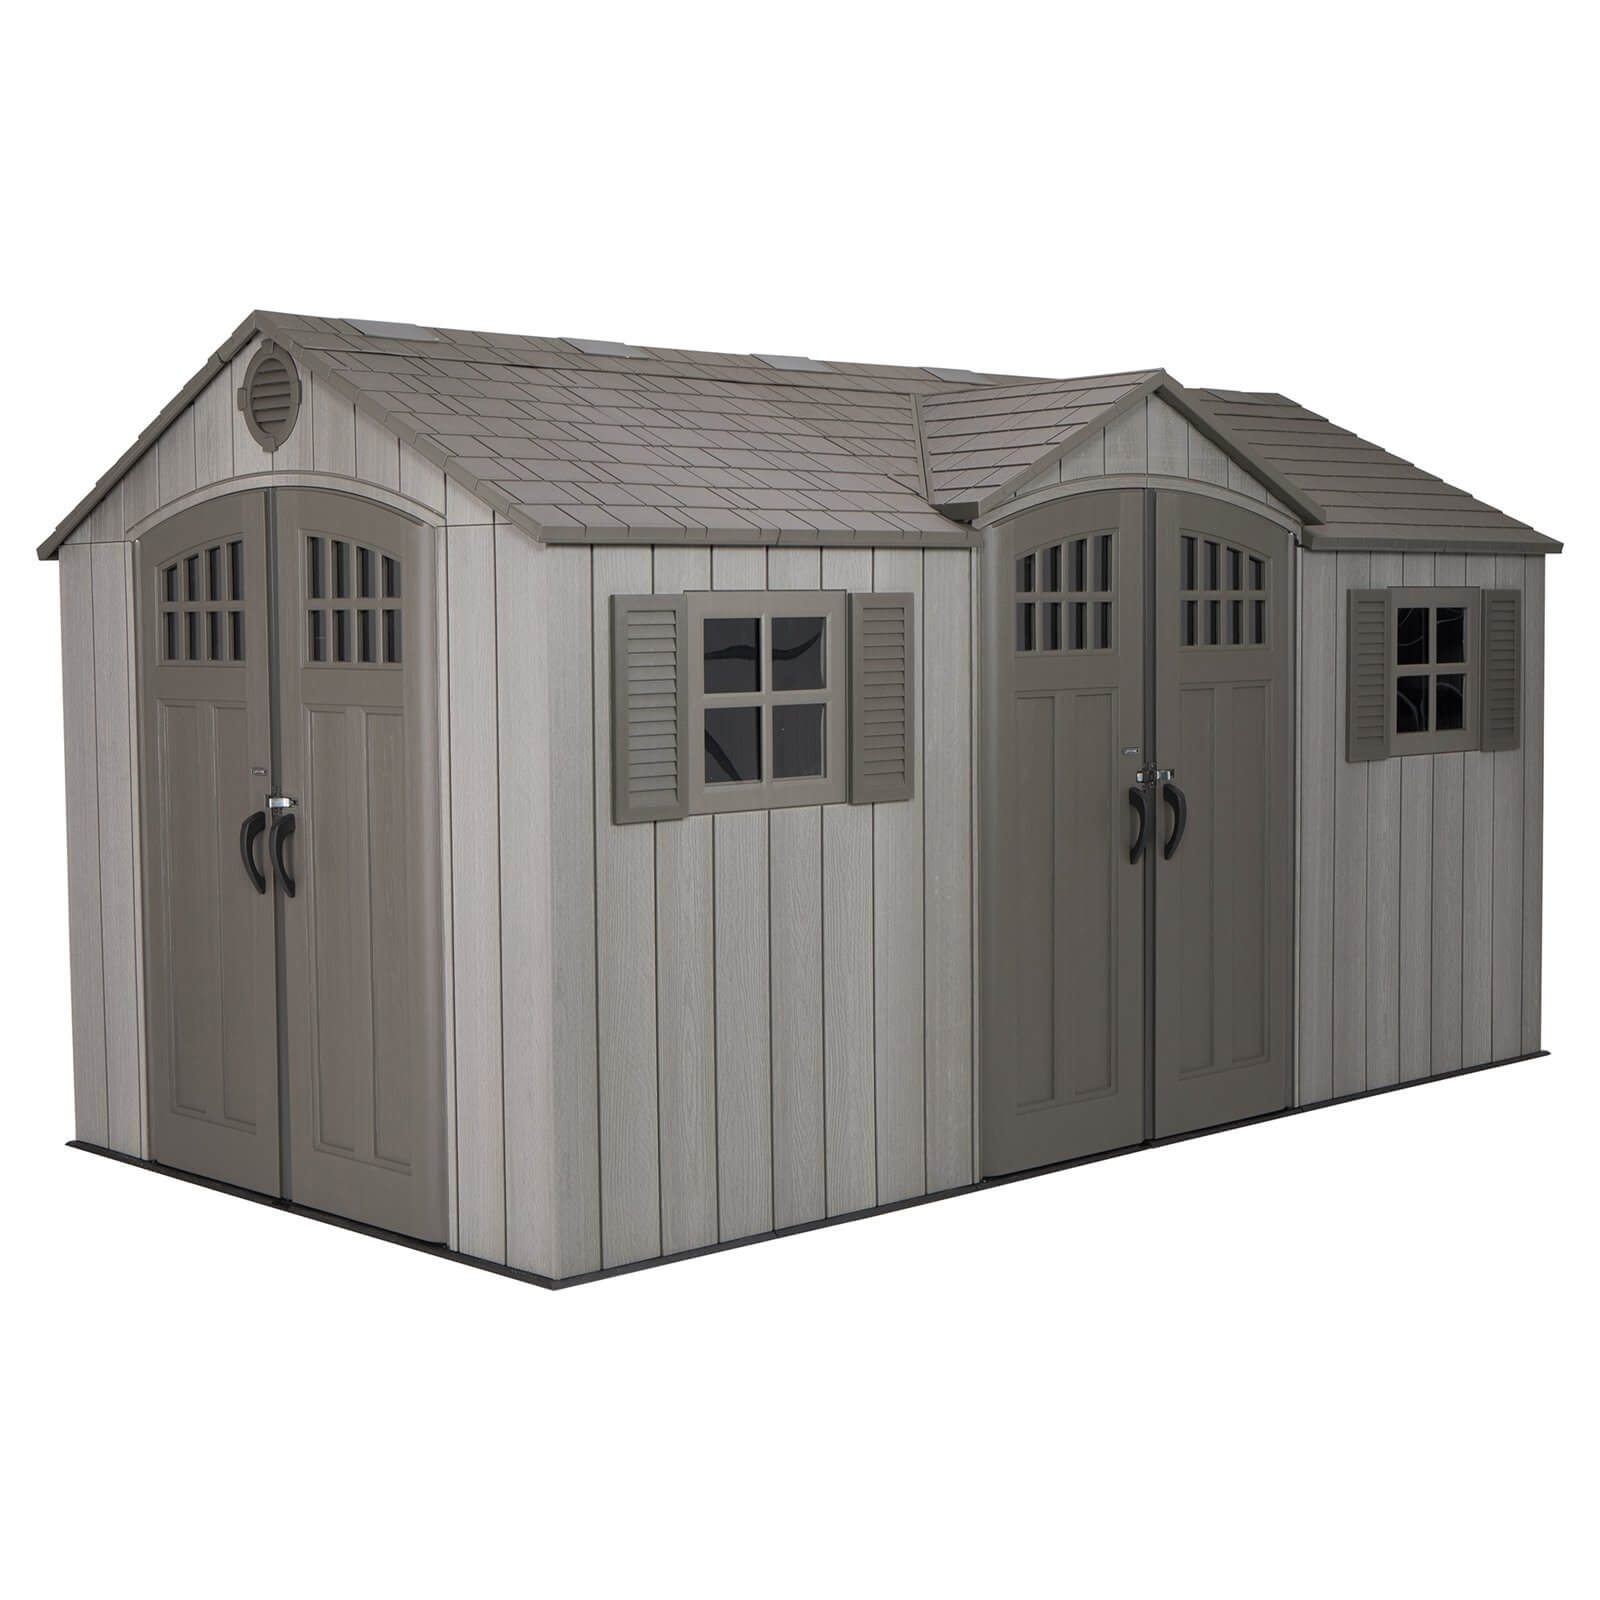 Lifetime 15x8 ft Rough Cut Dual Entry Outdoor Storage Shed